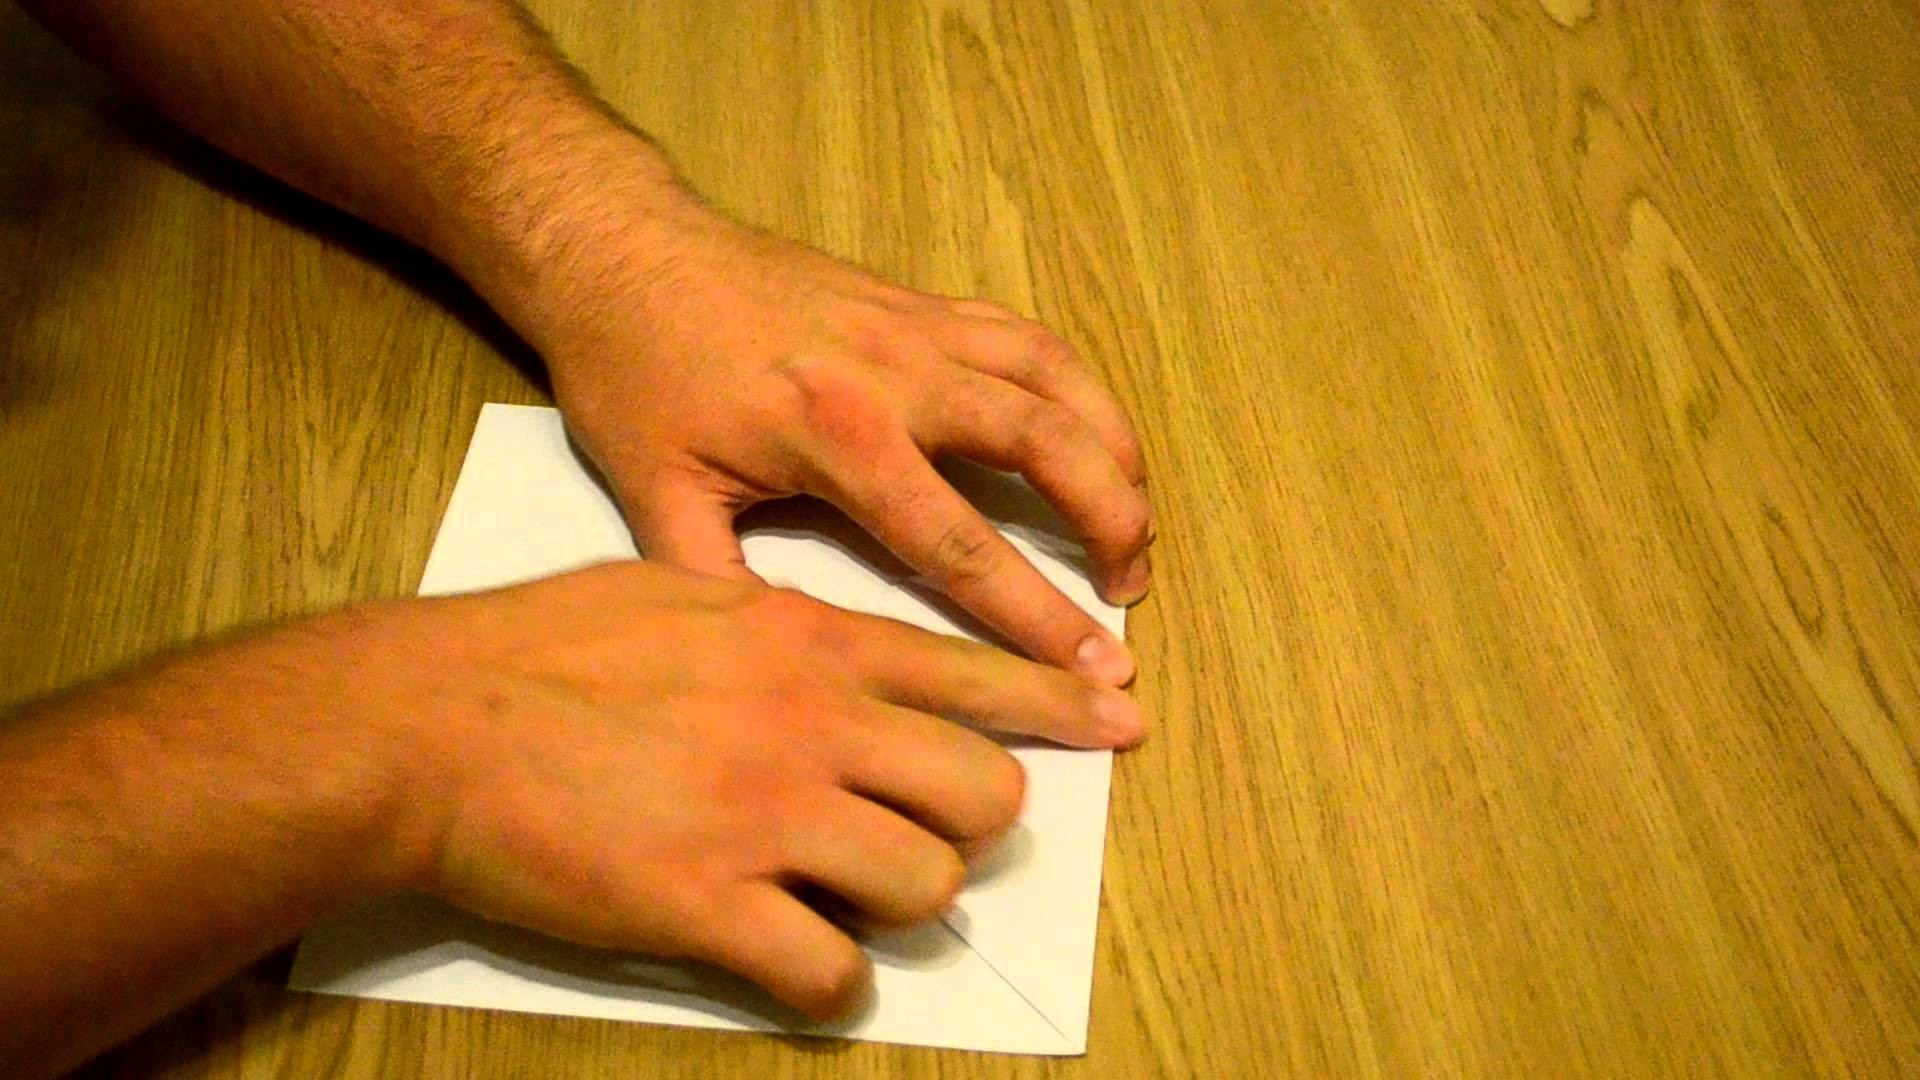 PAPER PLANE how to make a paper plane that glides effortlessly